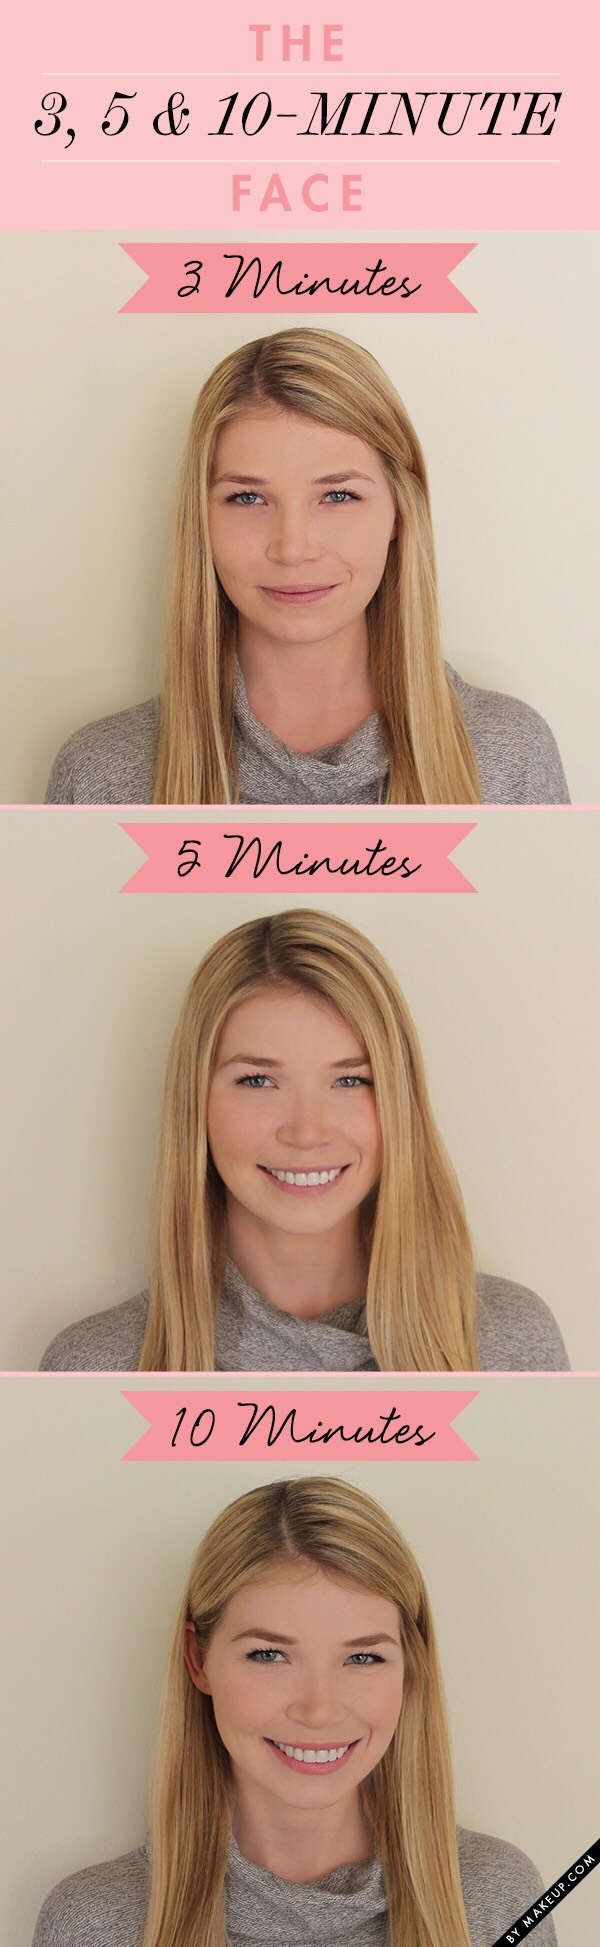 Go to makeup.com for these super-simple makeup routines.